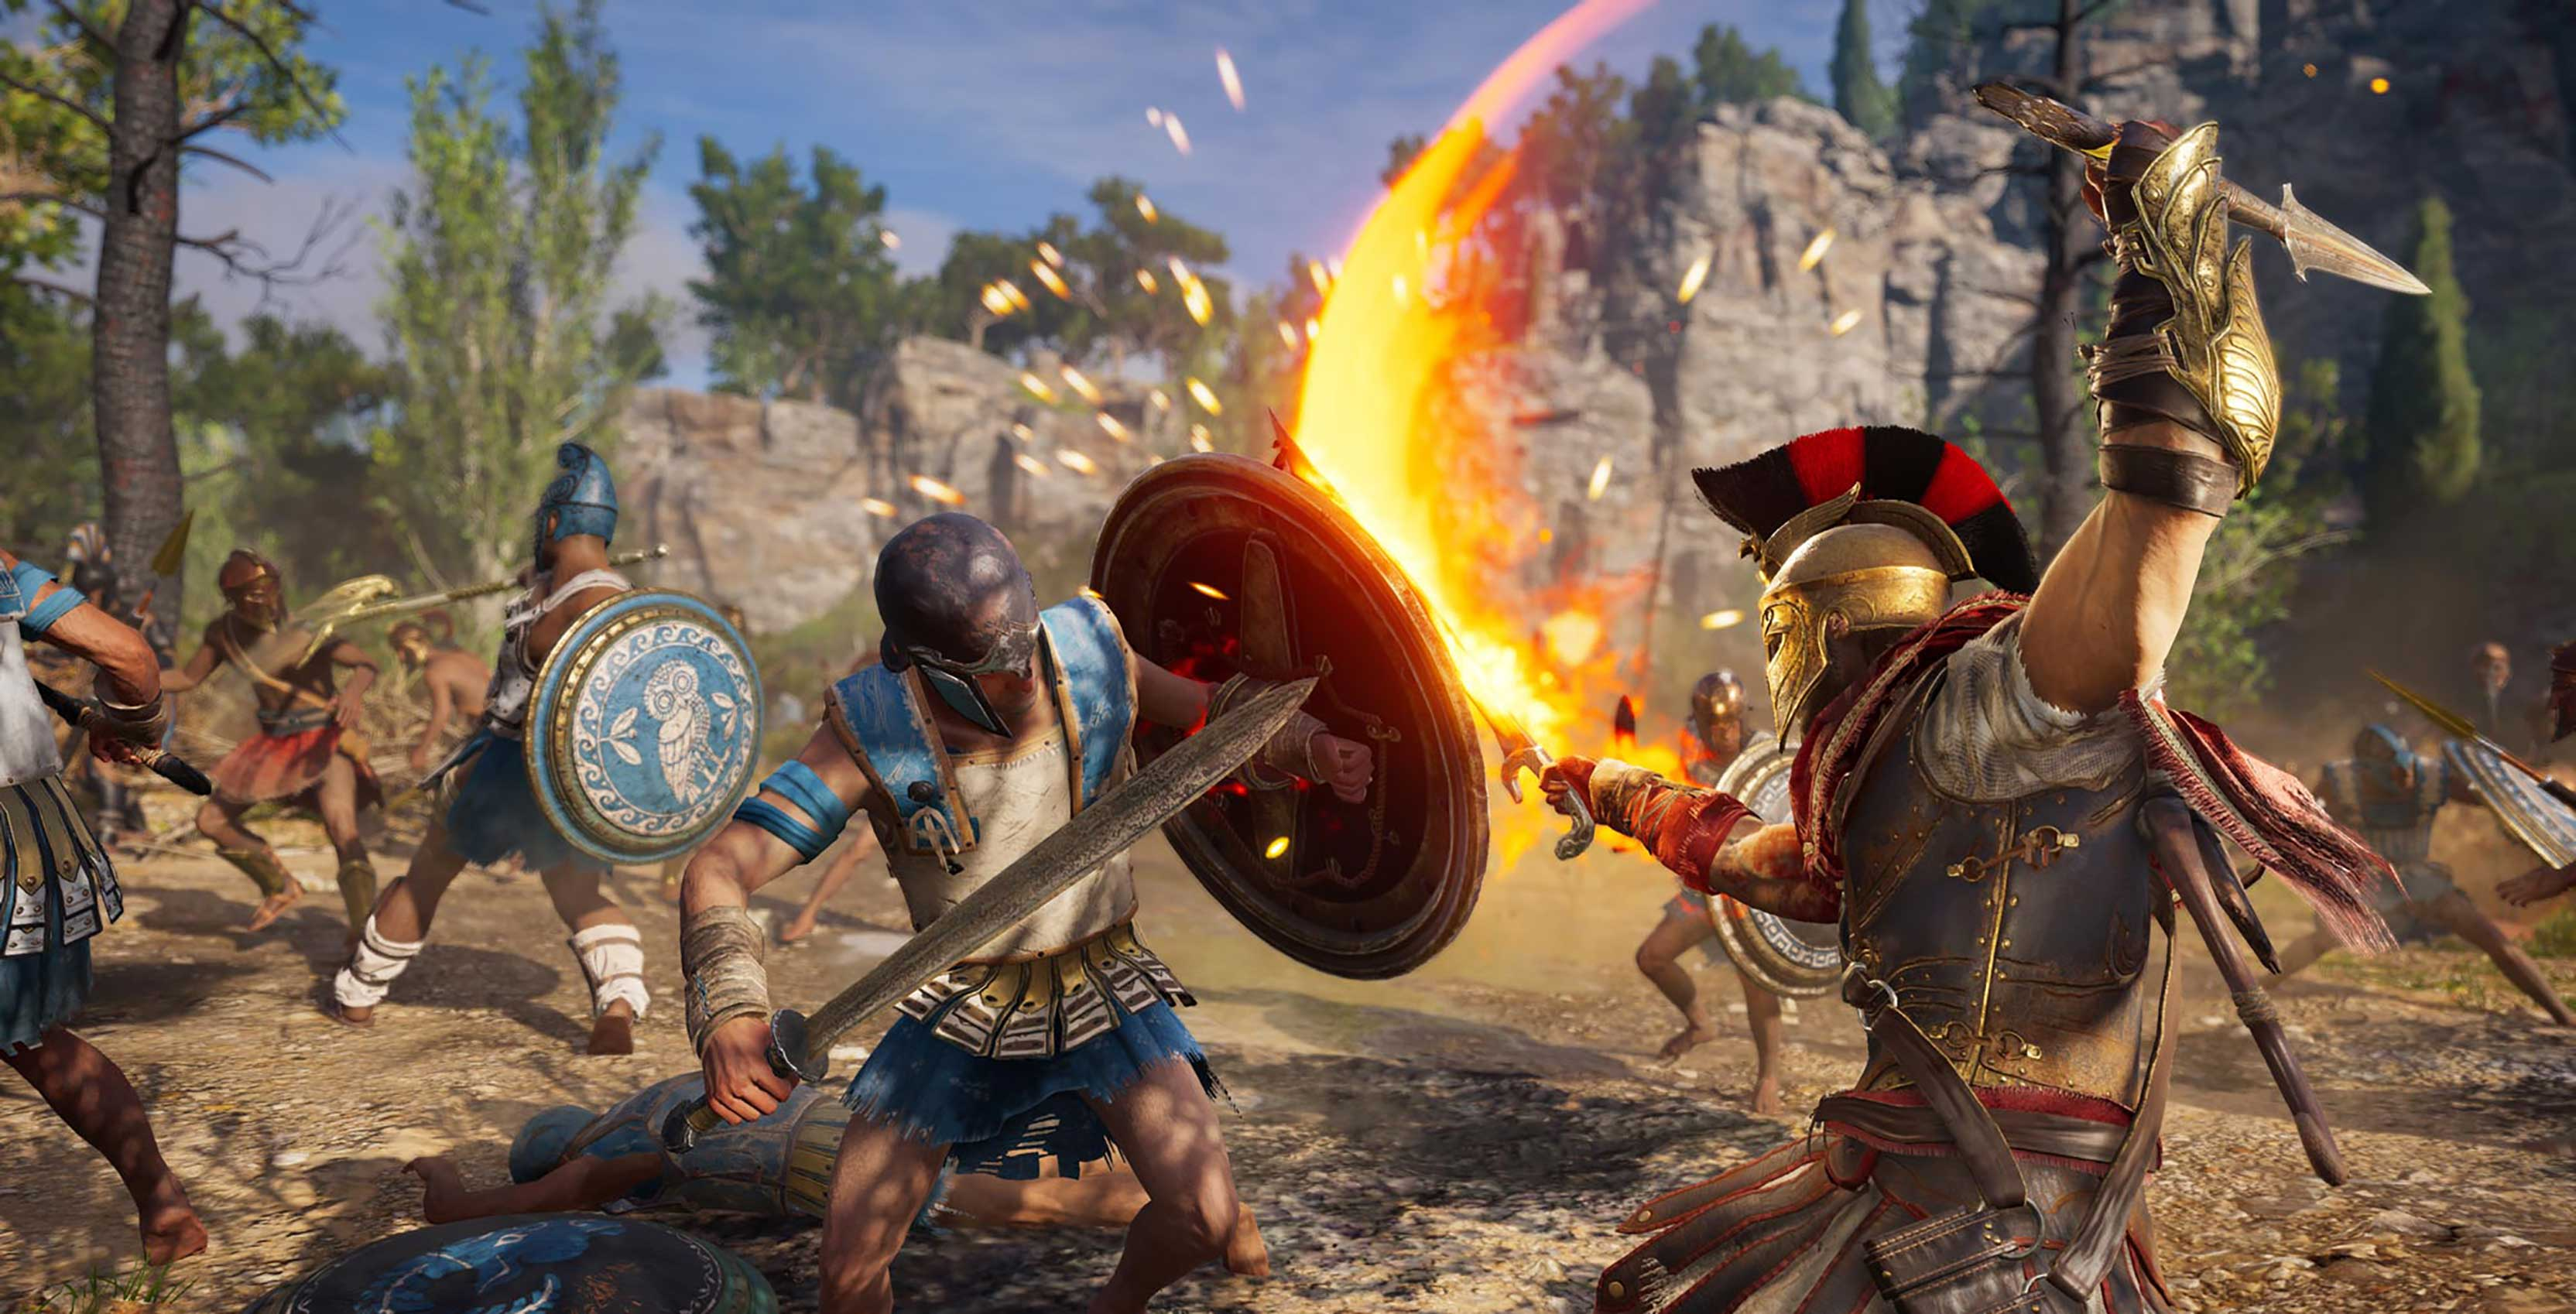 Assassin's Creed Odyssey combat